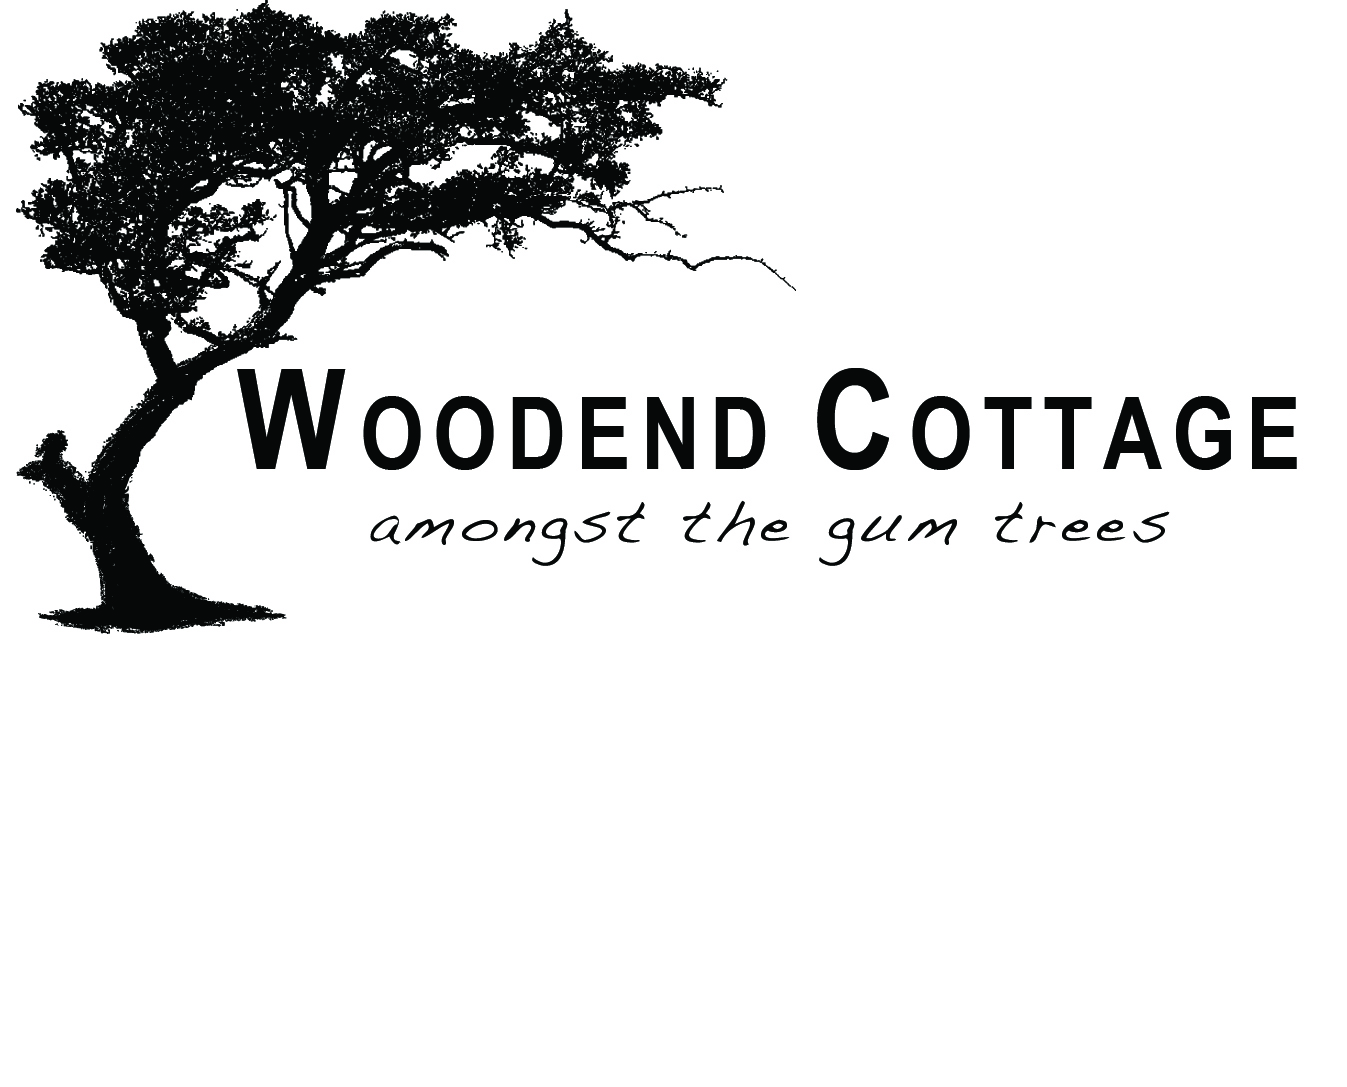 Woodend Cottage